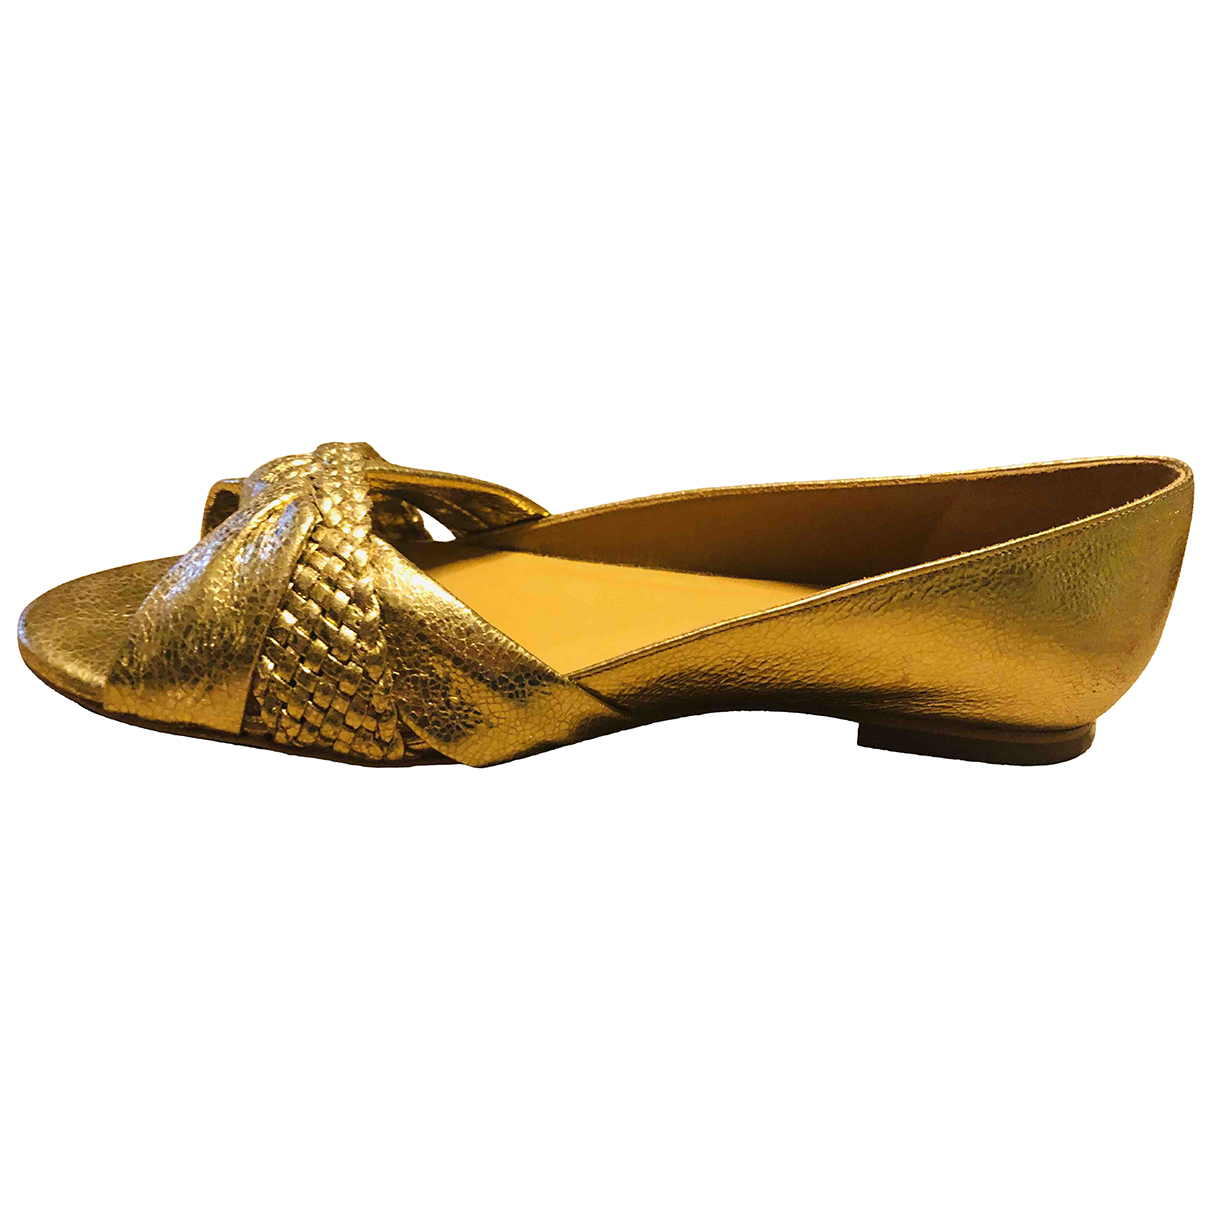 Sézane Spring Summer 2020 Gold Leather Sandals for Women 39 EU